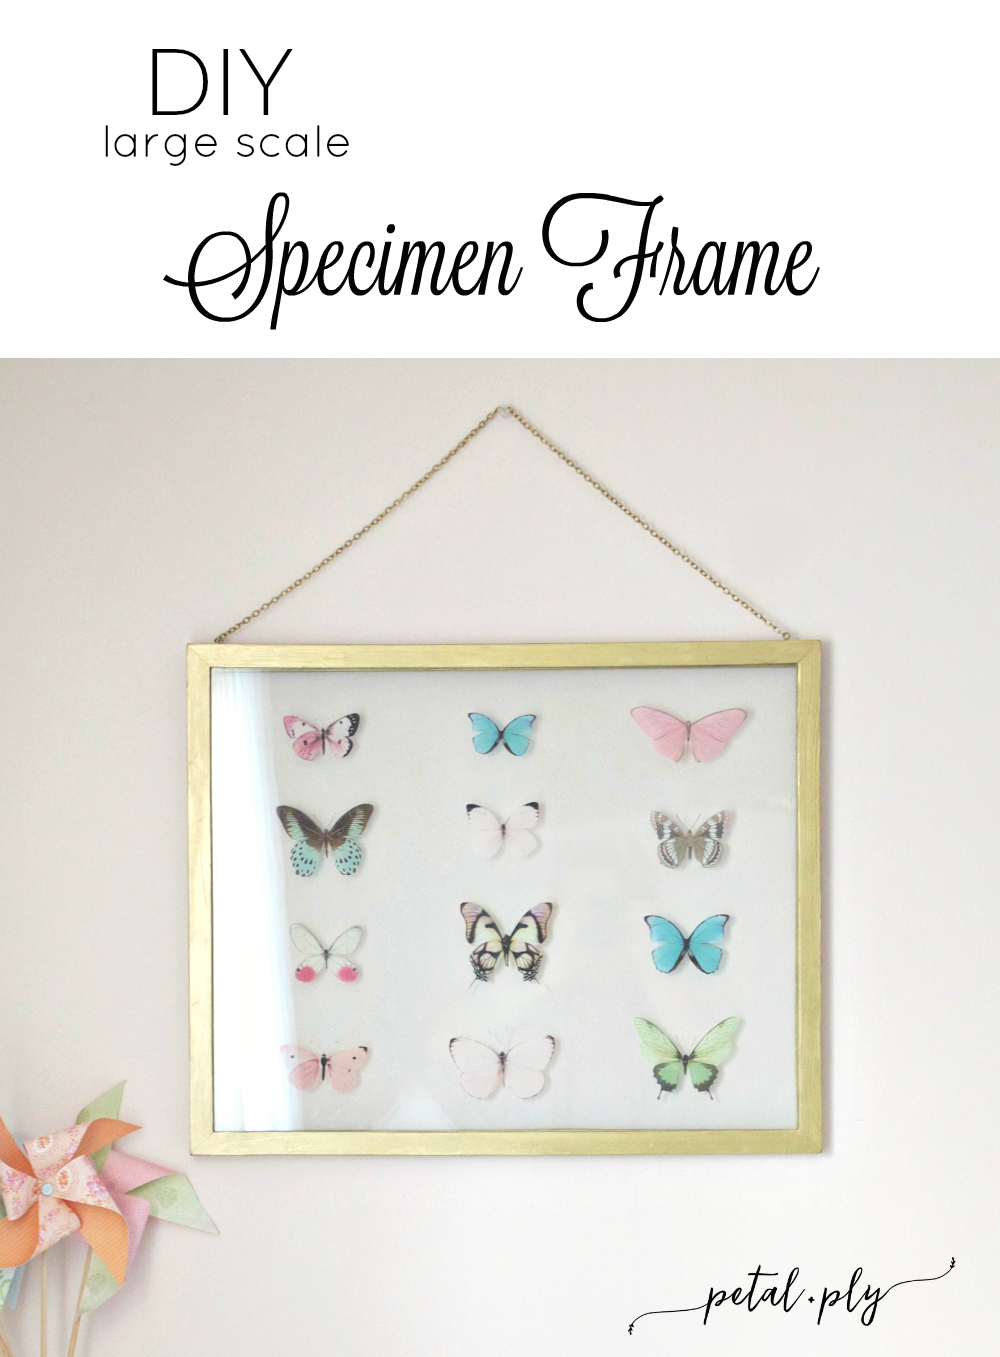 wm-DIY-large-scale-specimen-frame-pinnable